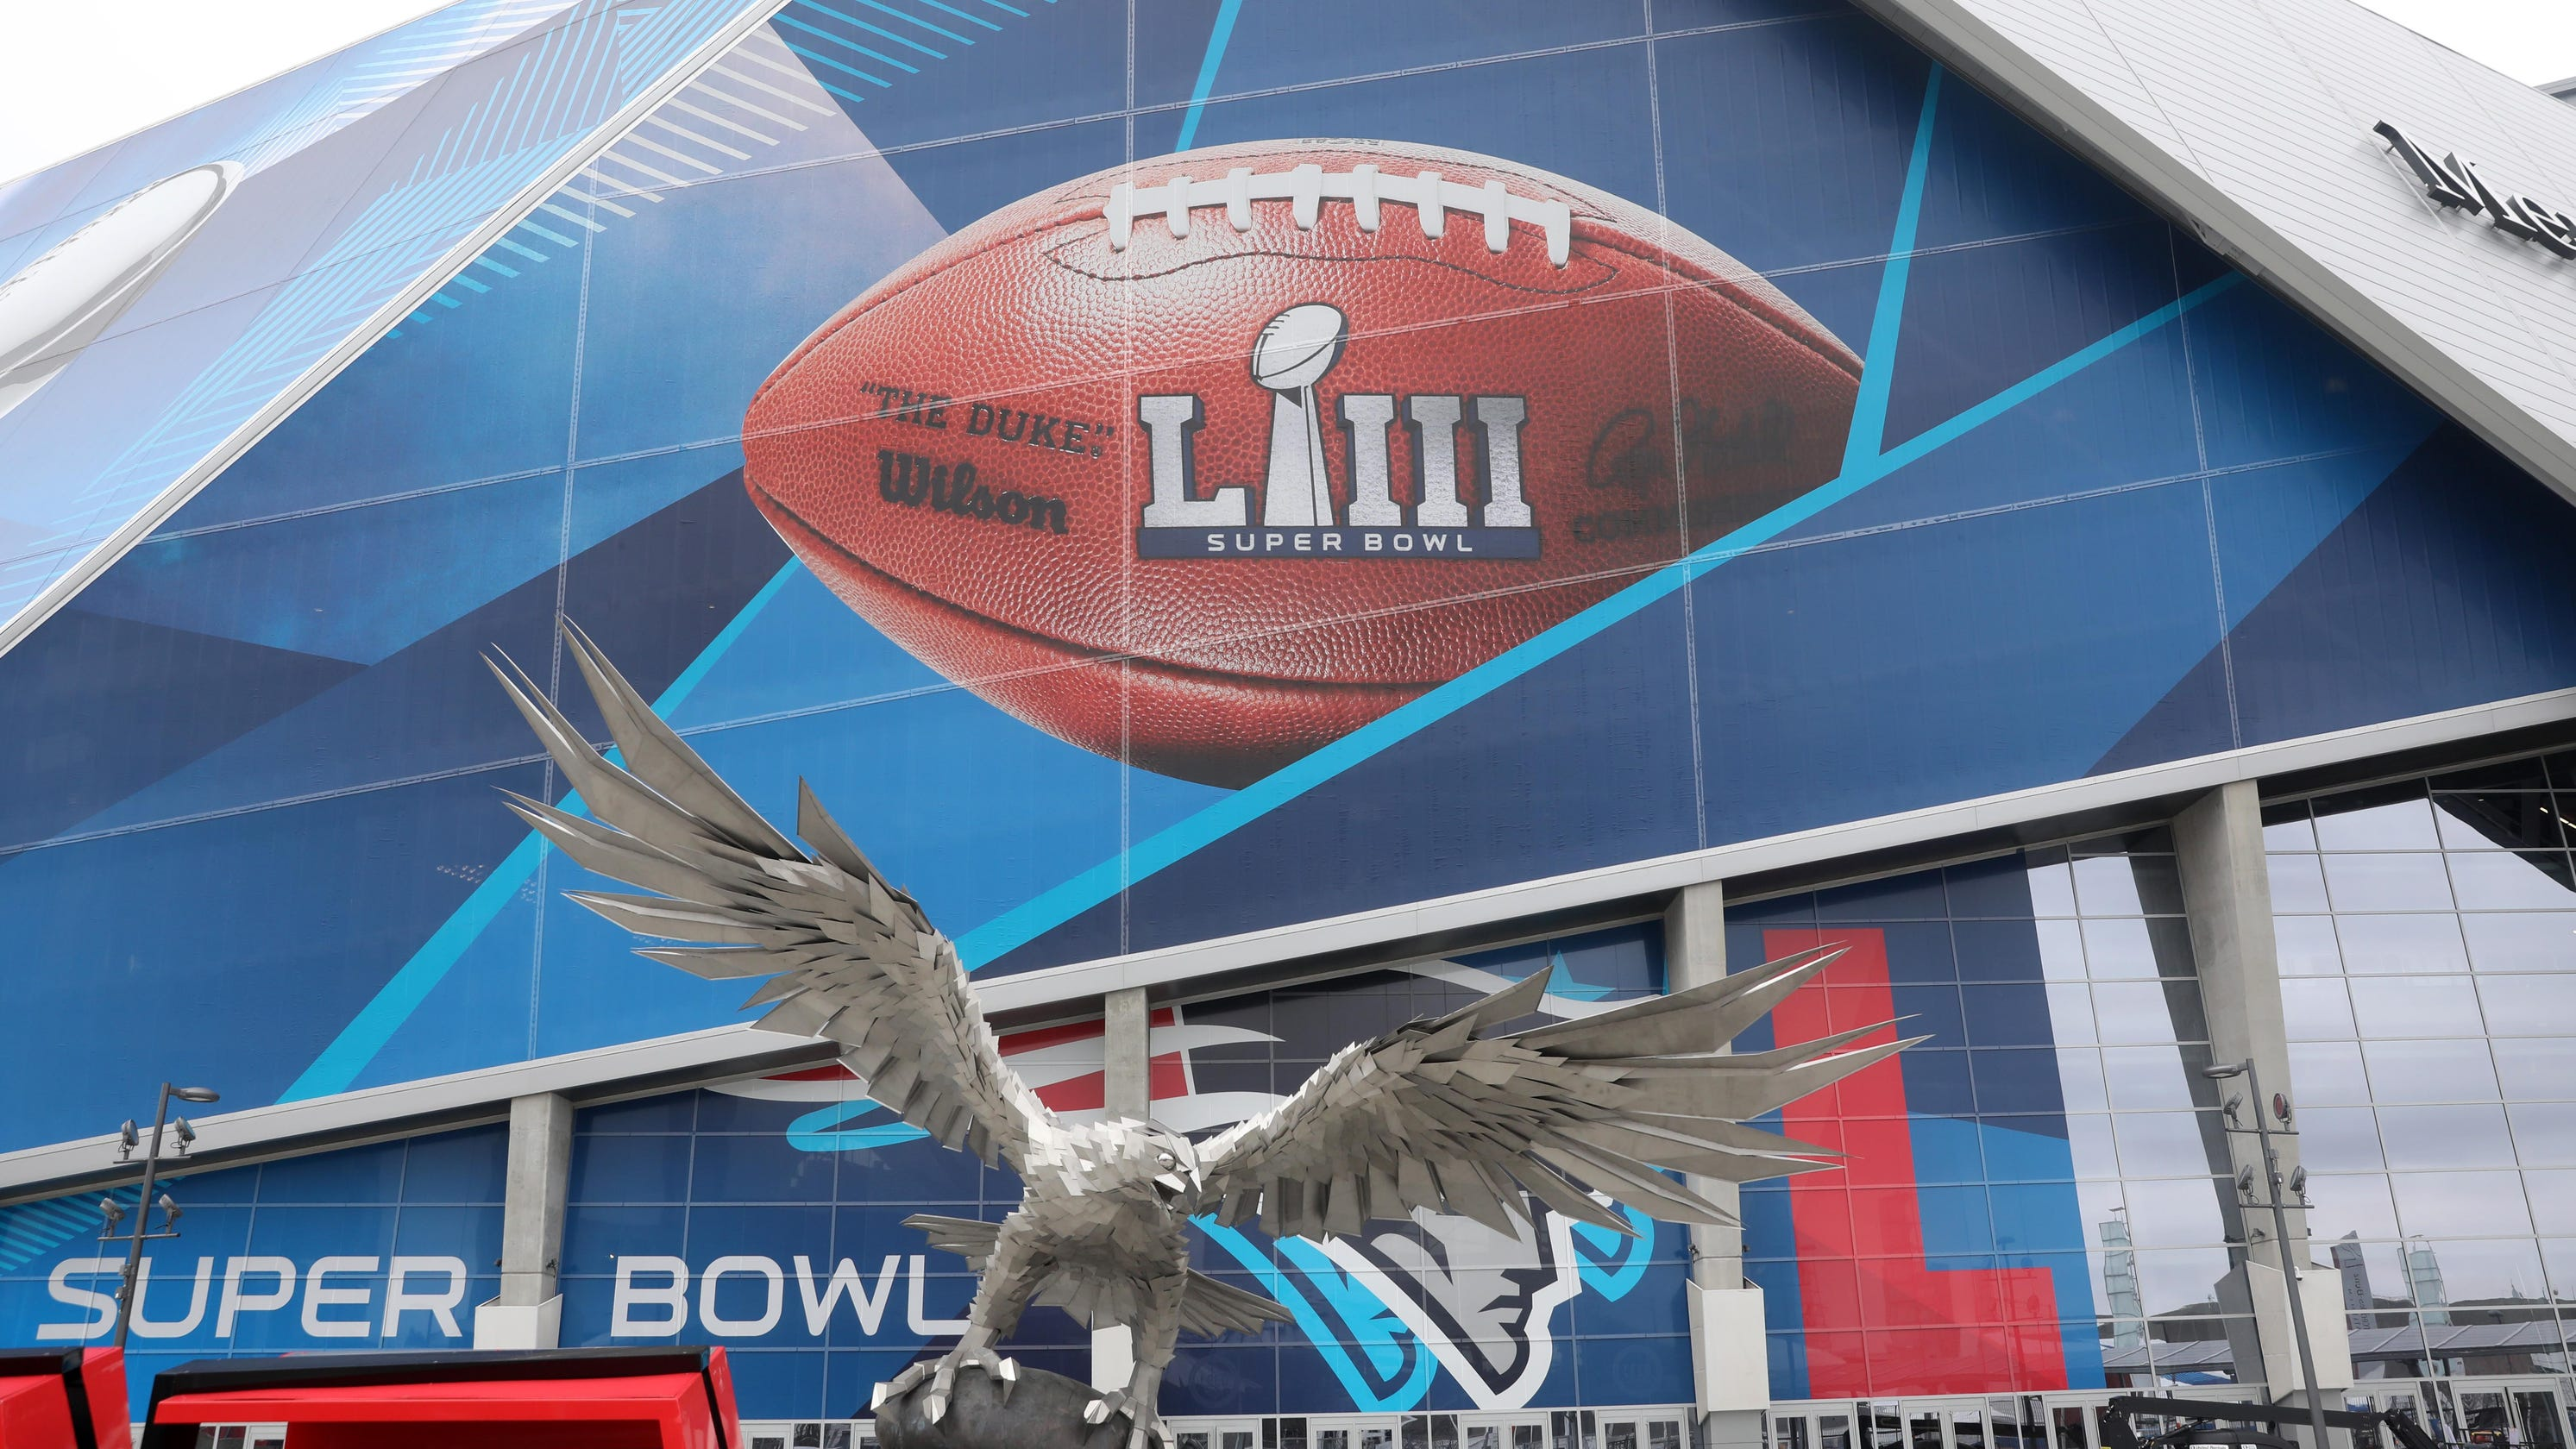 what day was the superbowl in 2011